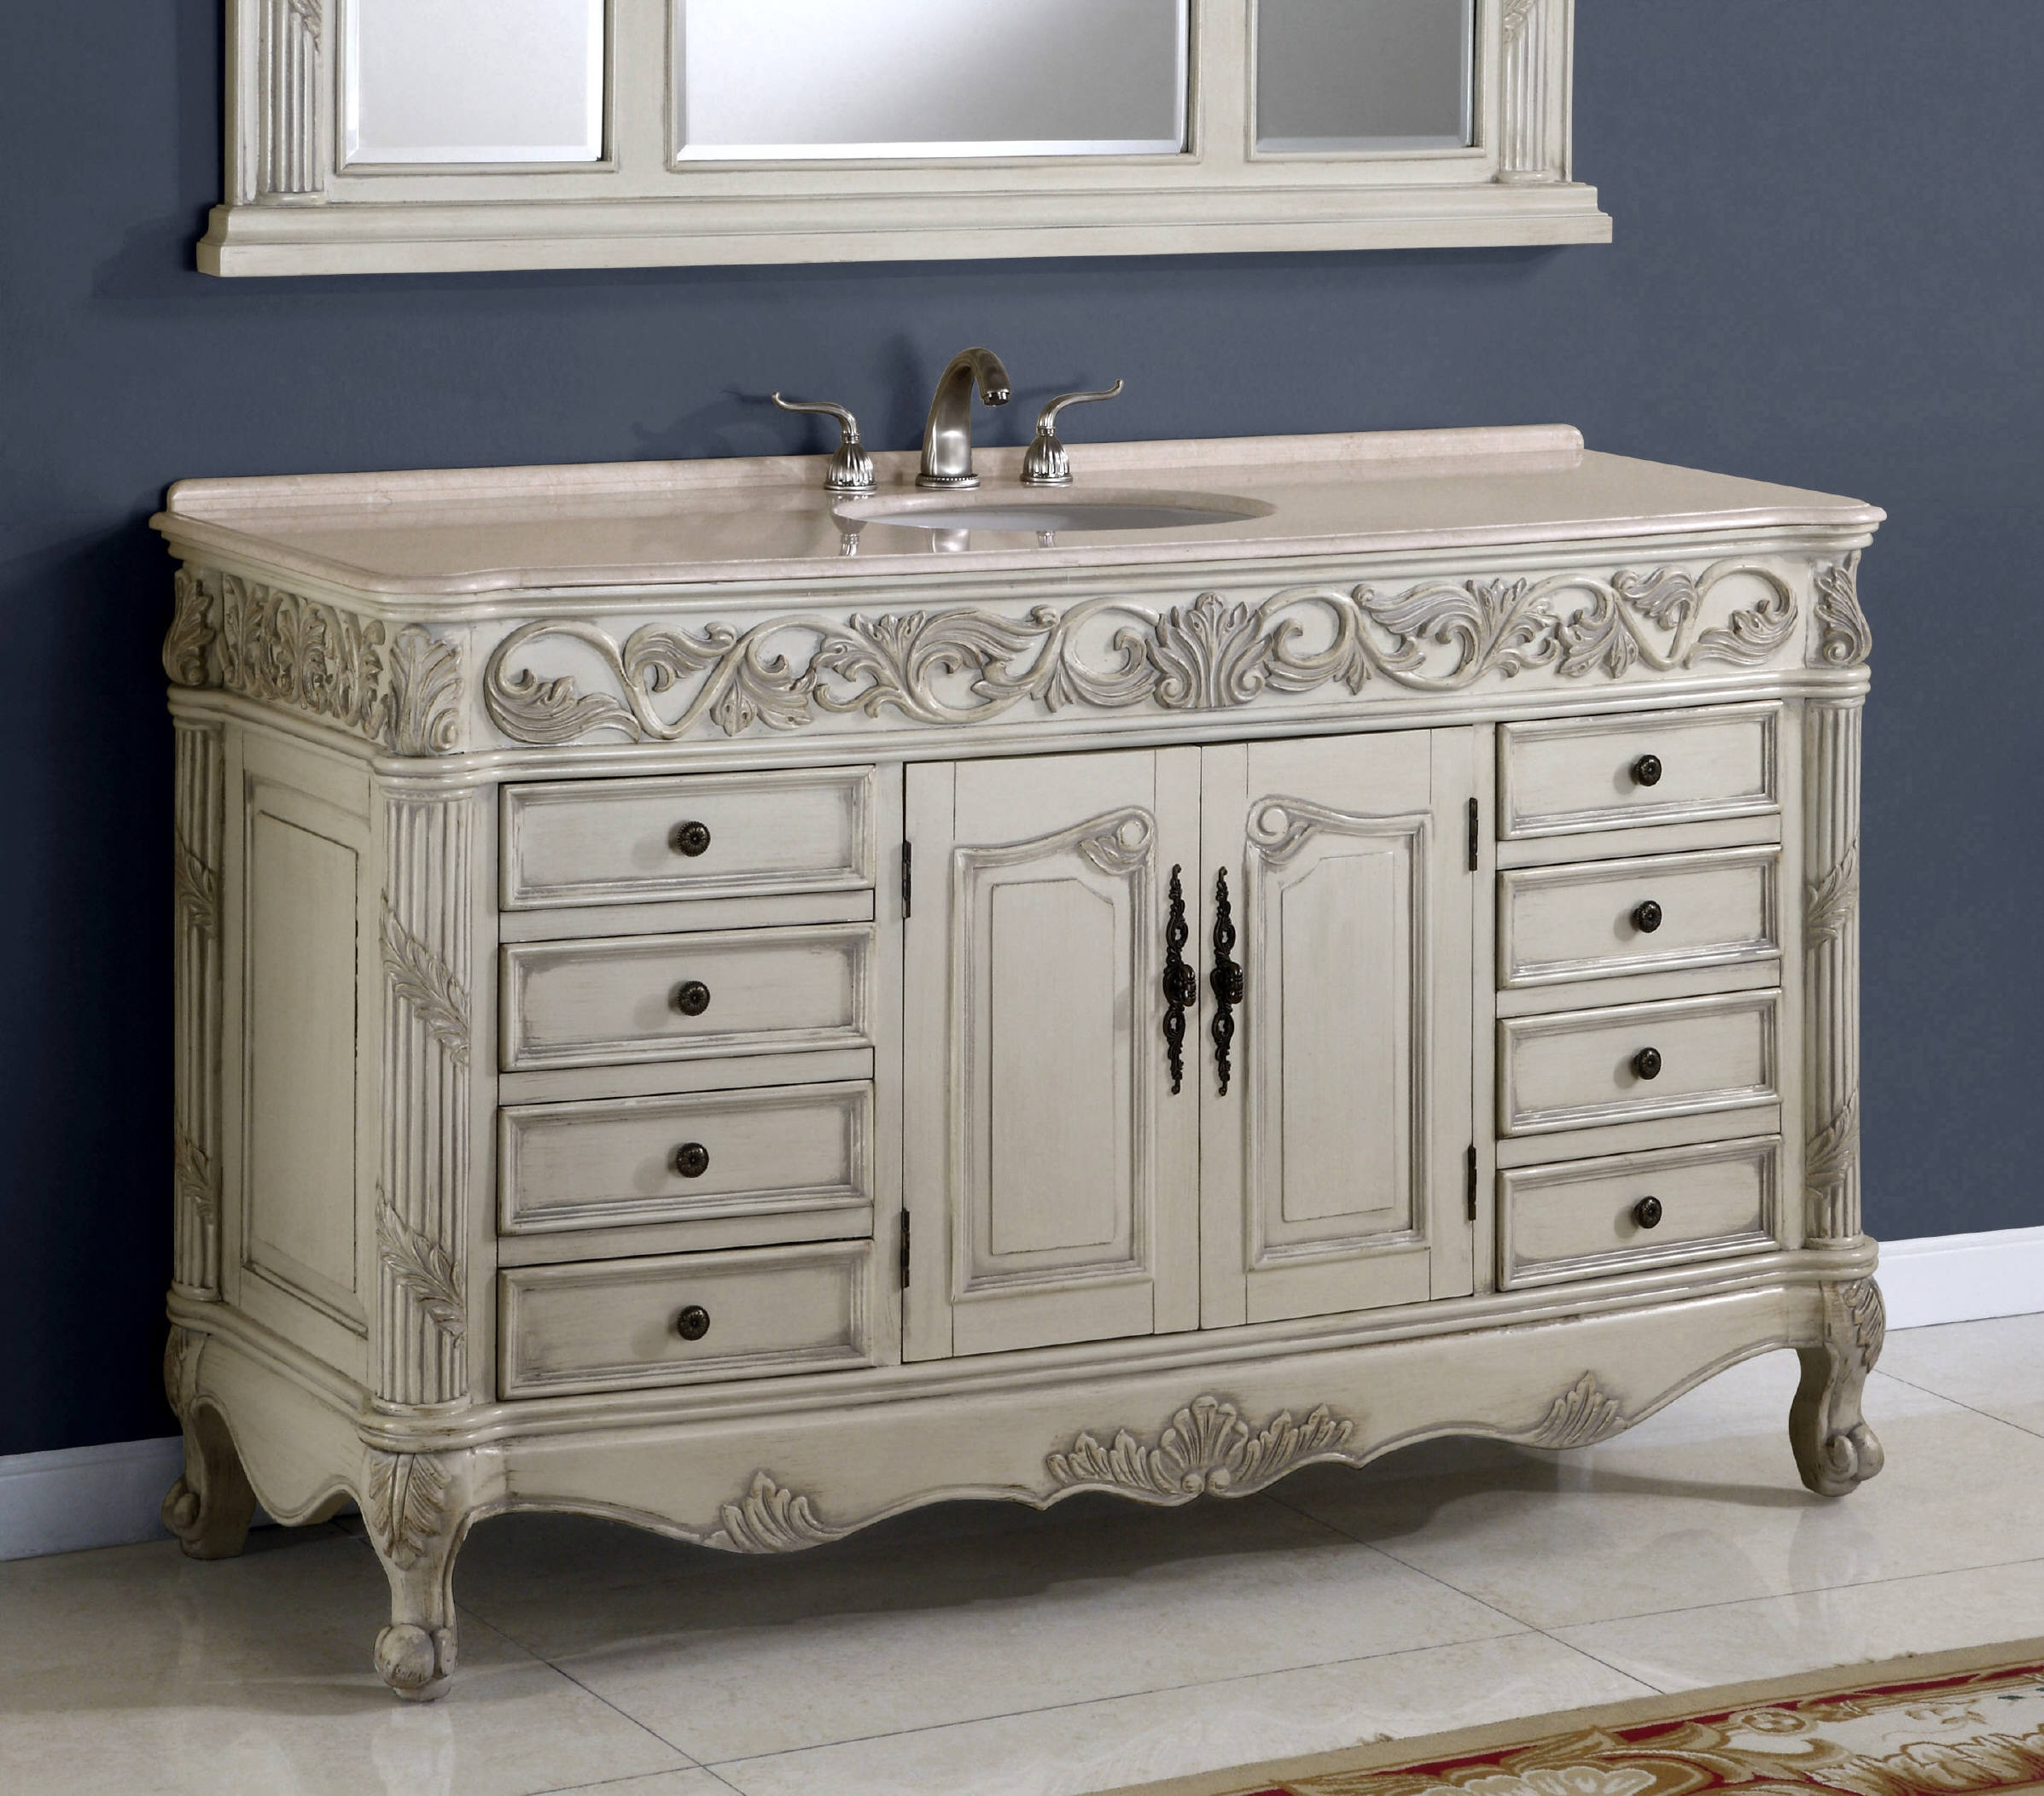 60 Inch Regent Vanity Single Sink Vanity Vanity With Mirror